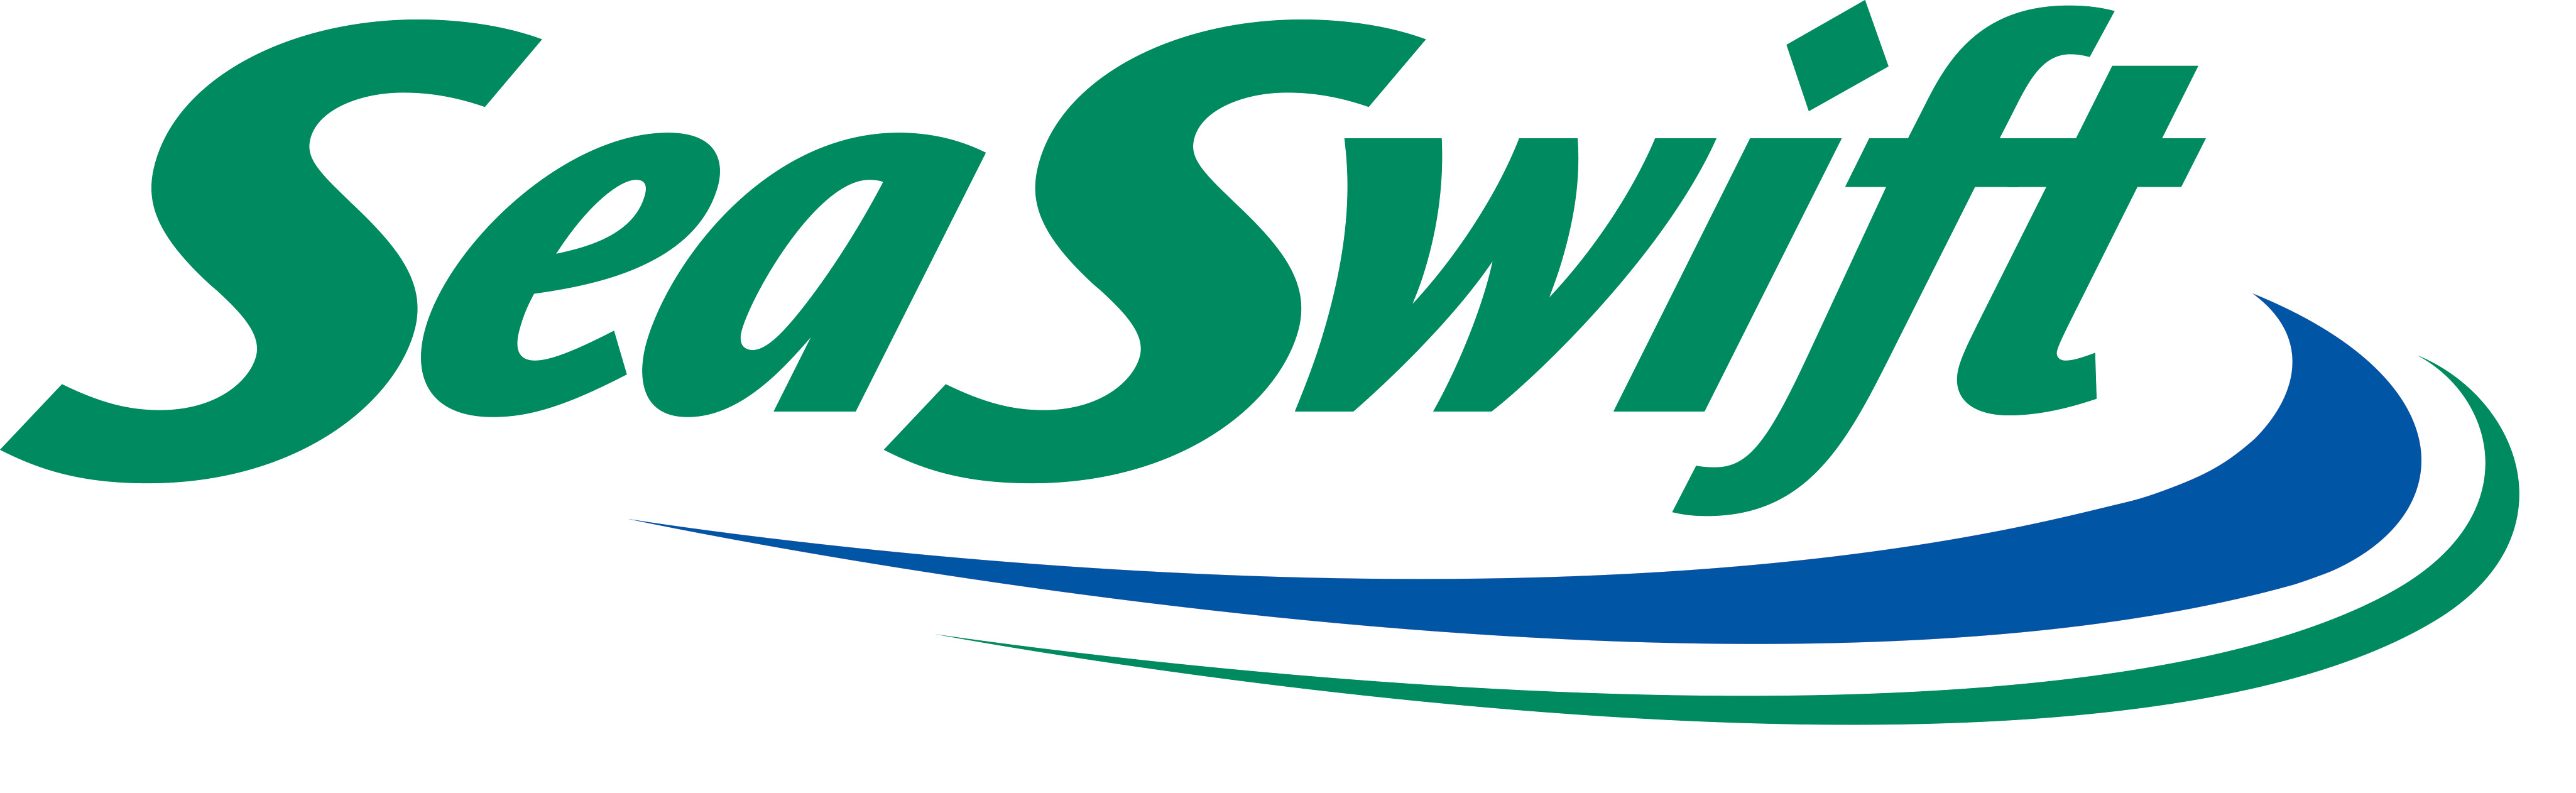 Sea Swift logo master 2014 (2)